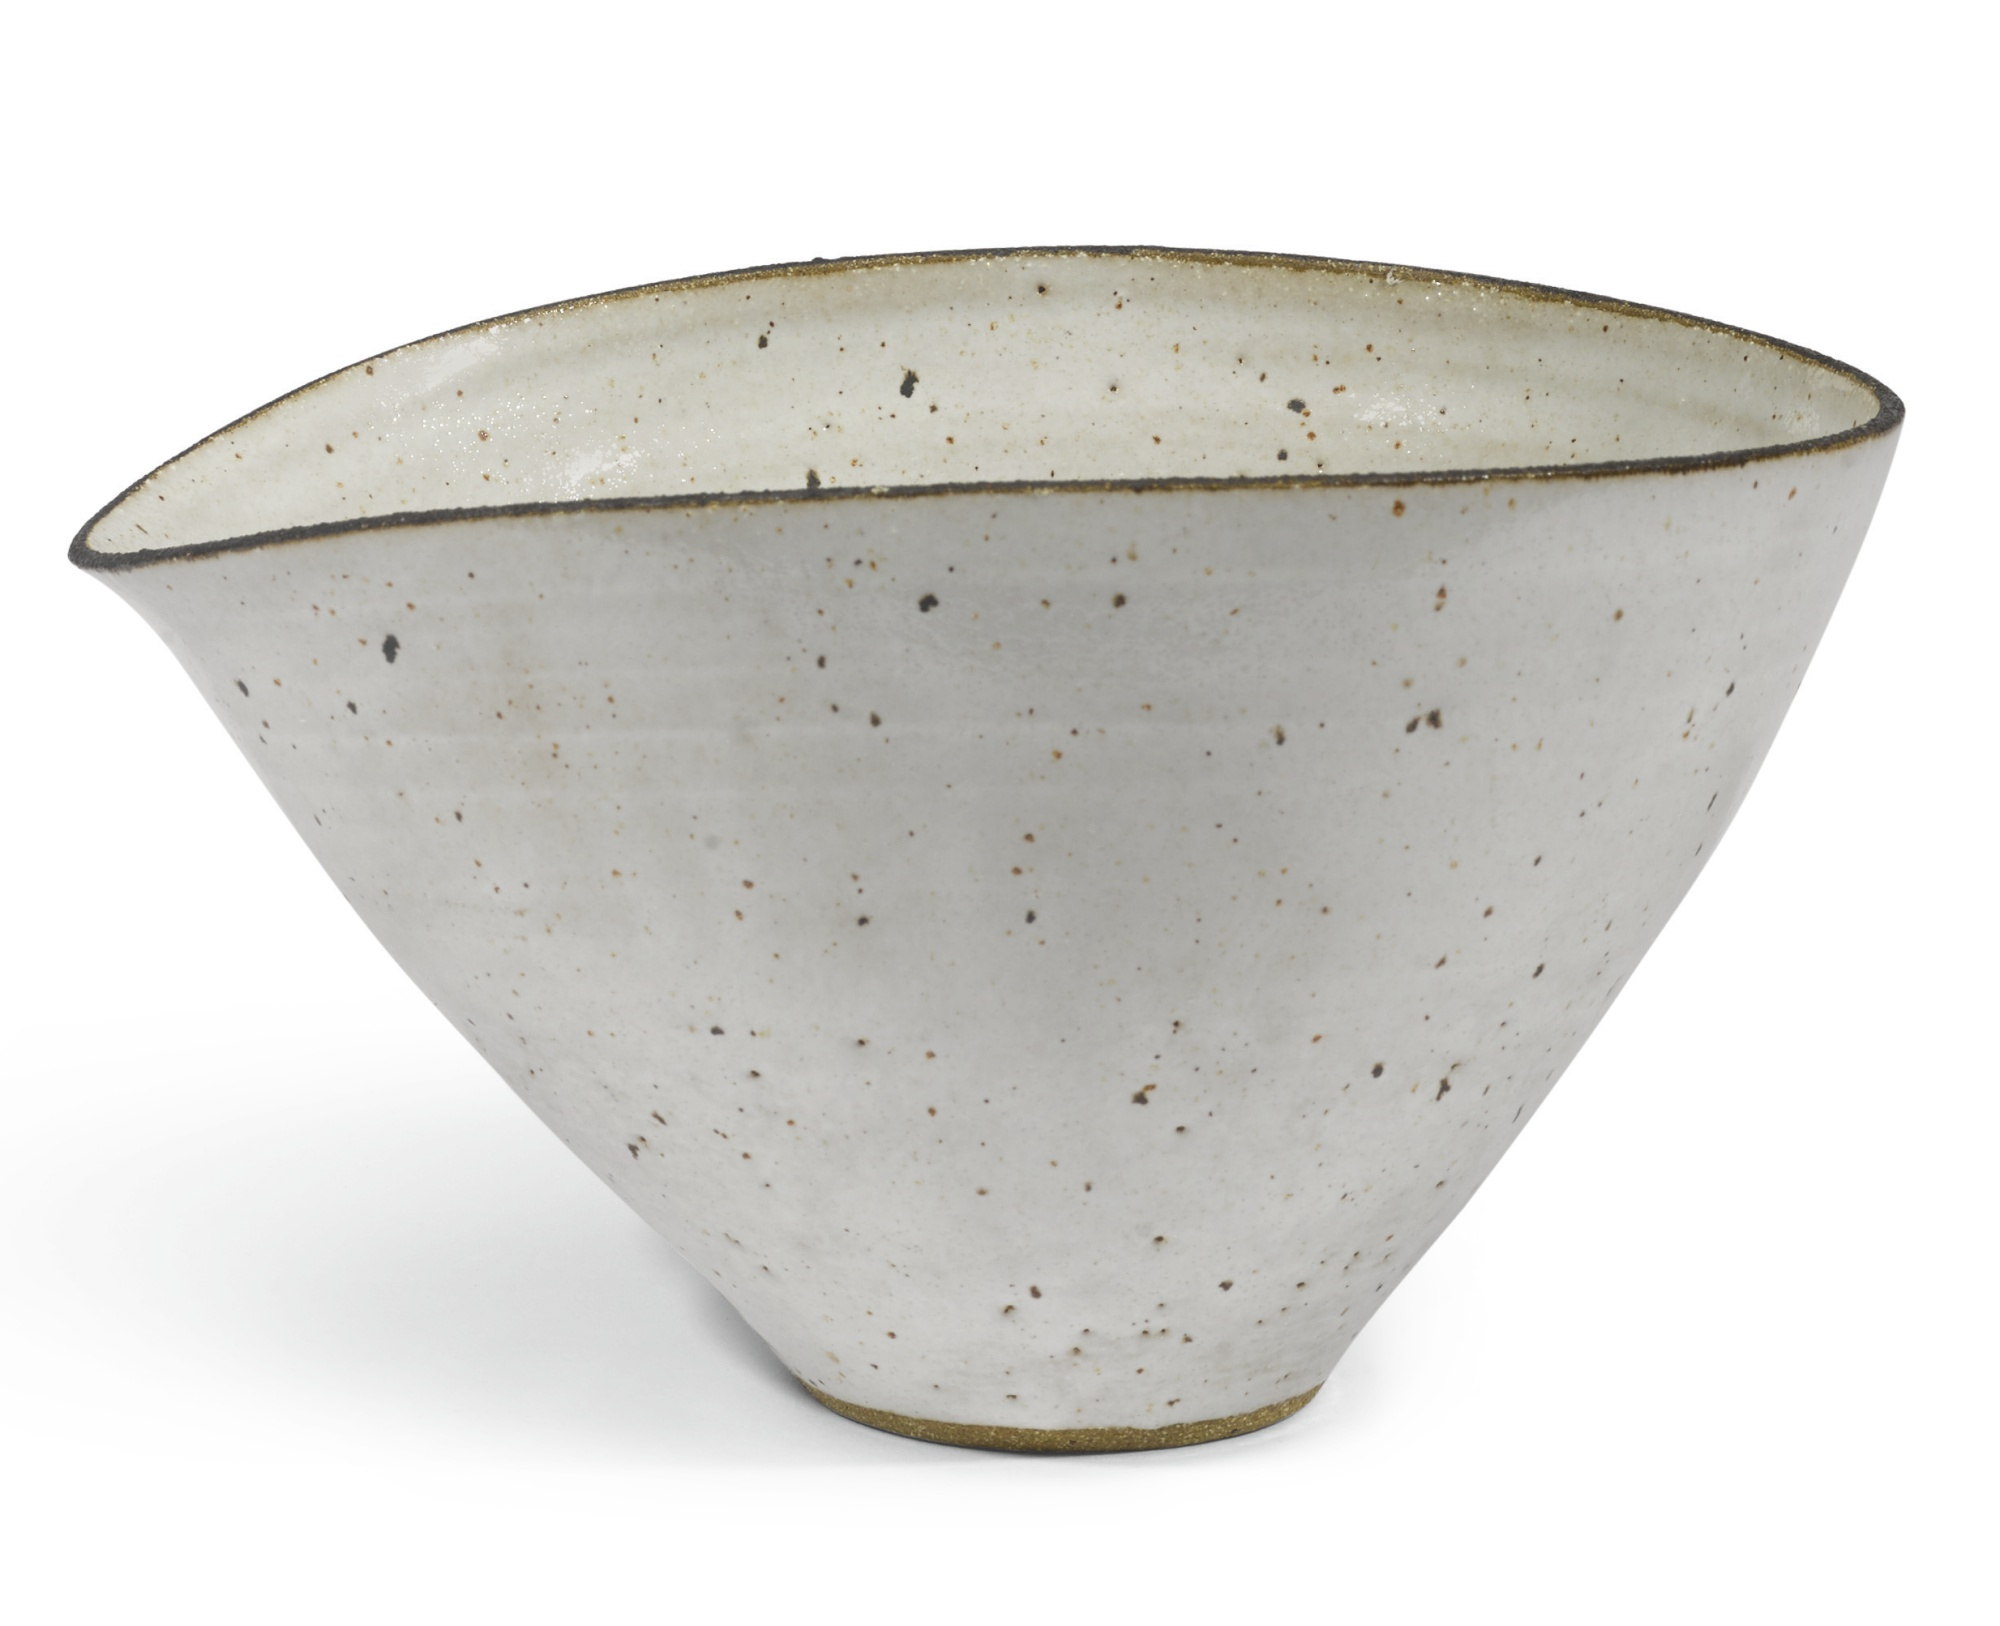 Lucie Rie-Squeezed Bowl With Pouring Lip-1950